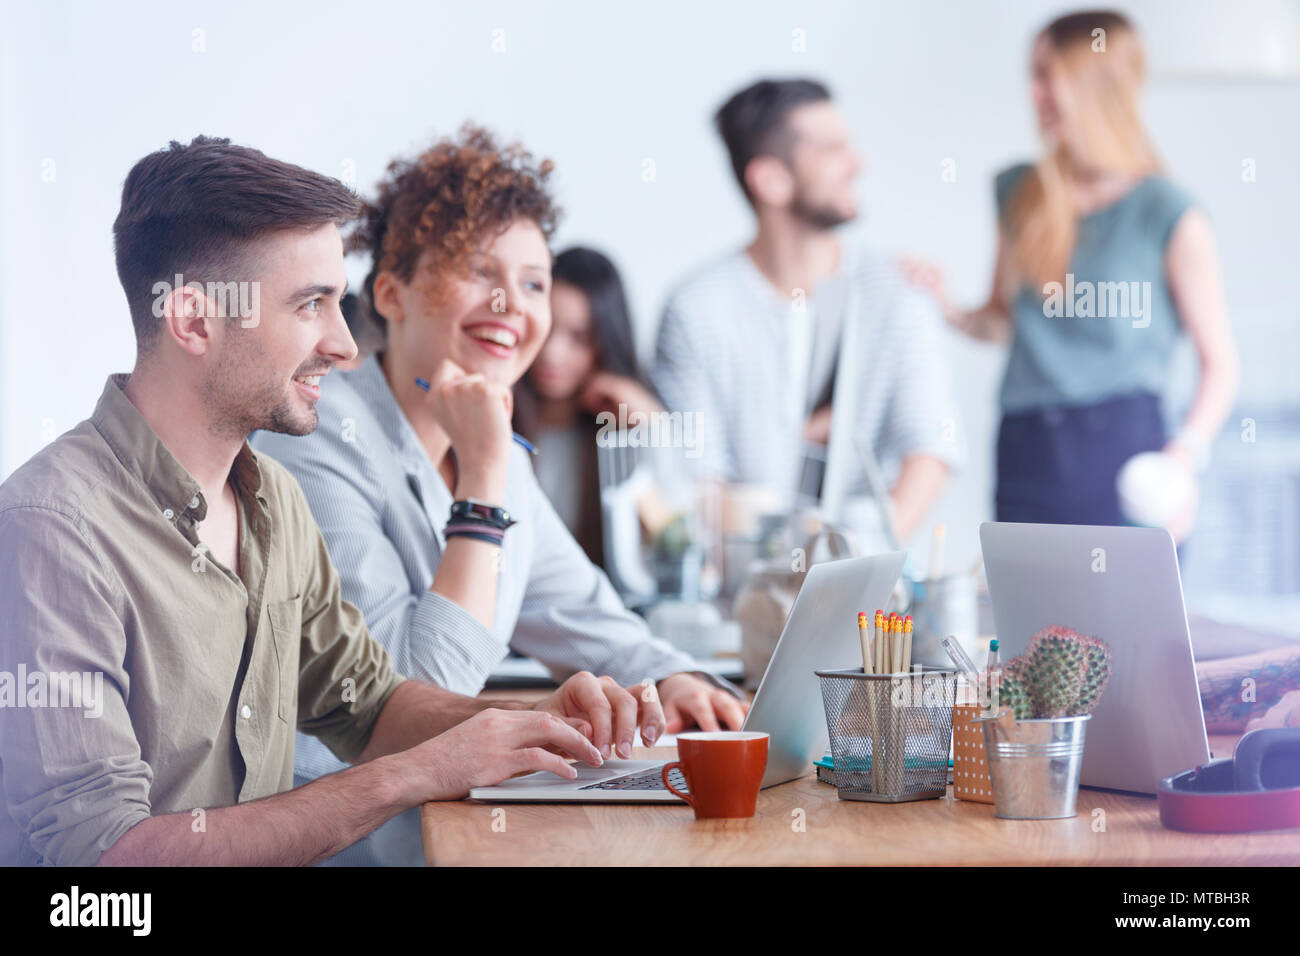 Group of colleagues at a coffee break having an interesting discussion - Stock Image